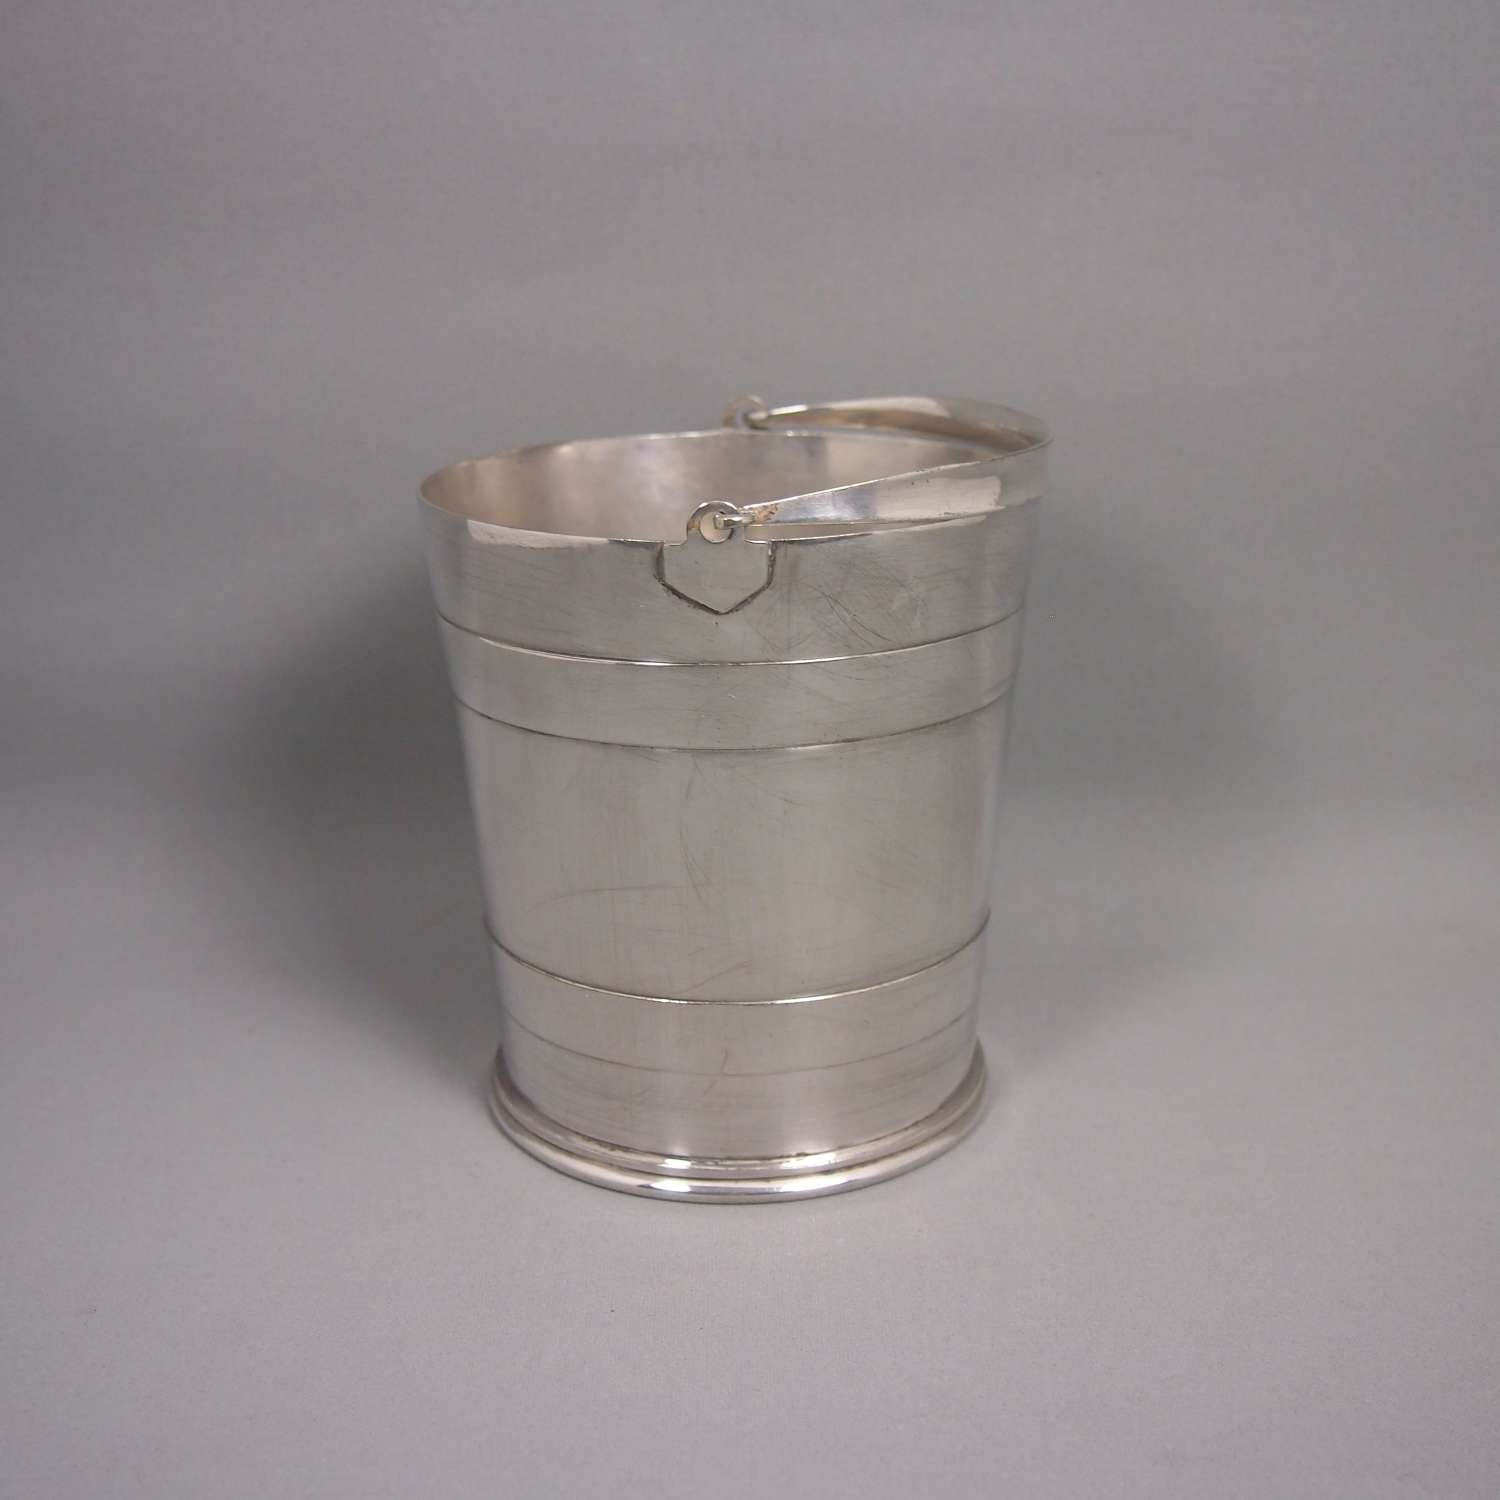 Vintage Silver Plated Ice Bucket C1930s.W8636